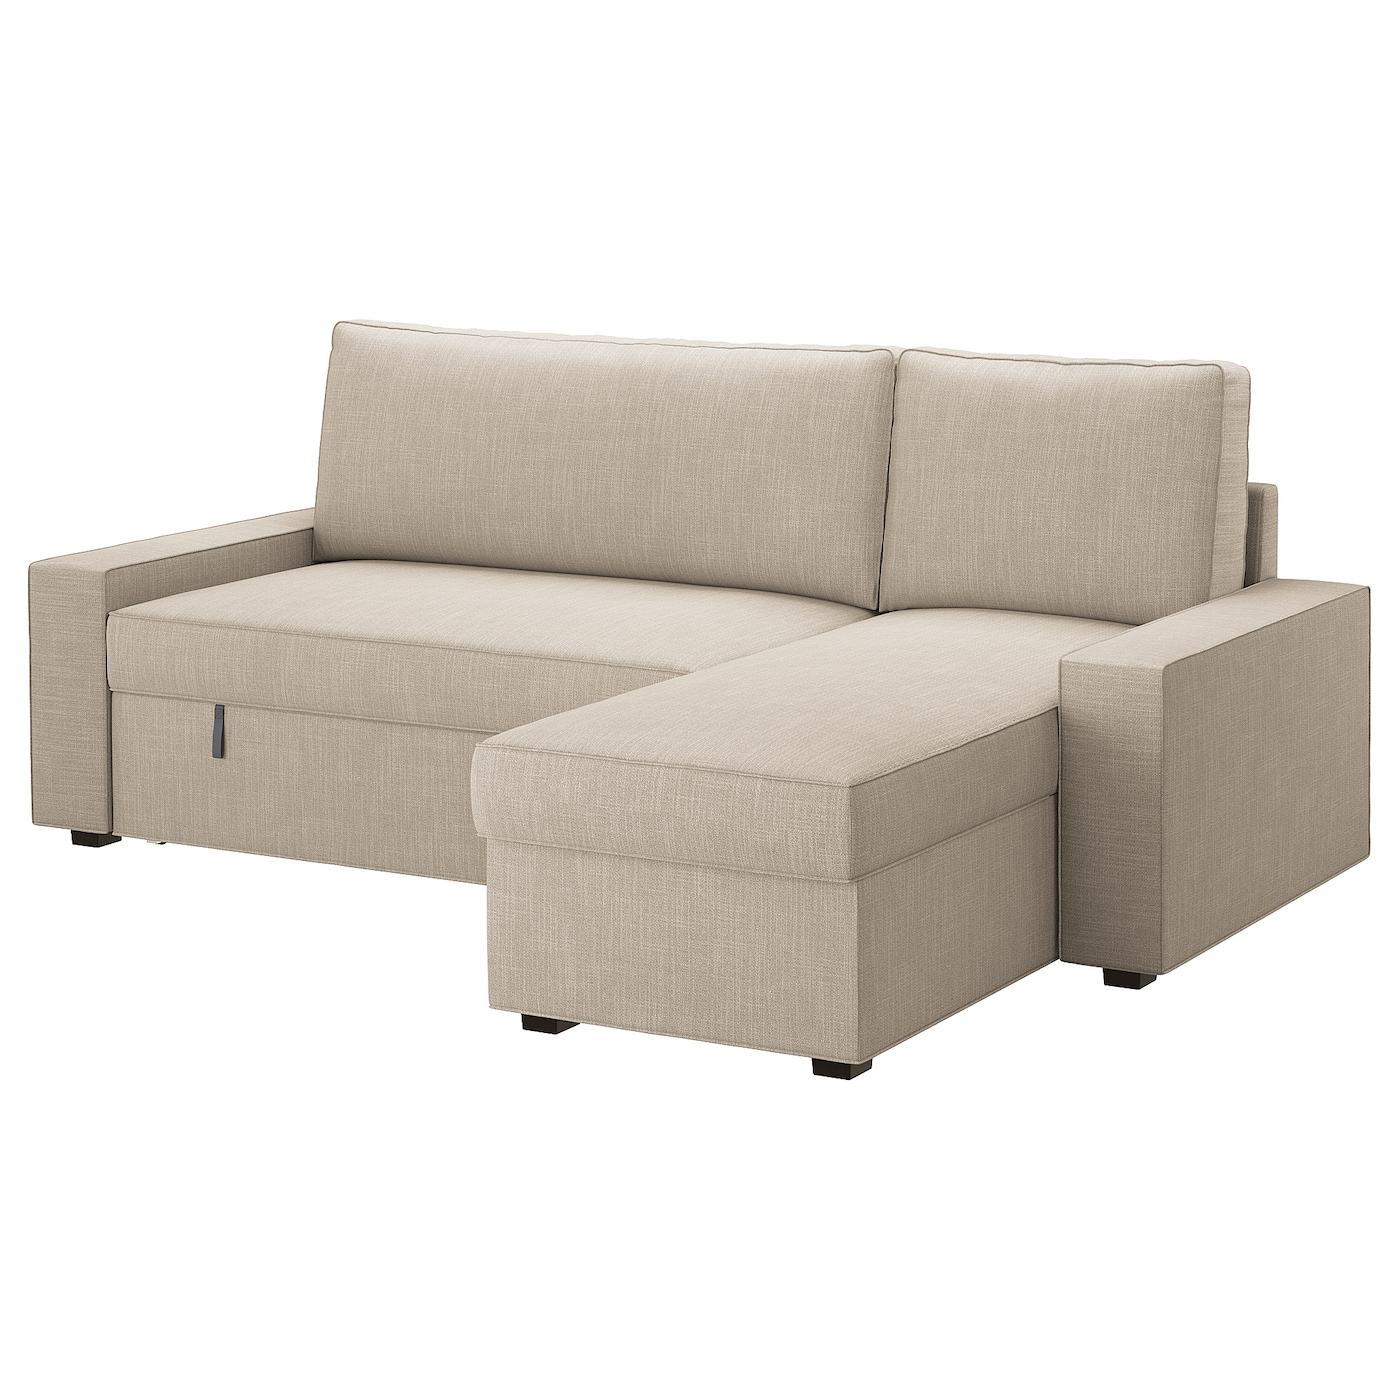 Vilasund cover sofa bed with chaise longue hillared beige for Chaise longue jardin ikea